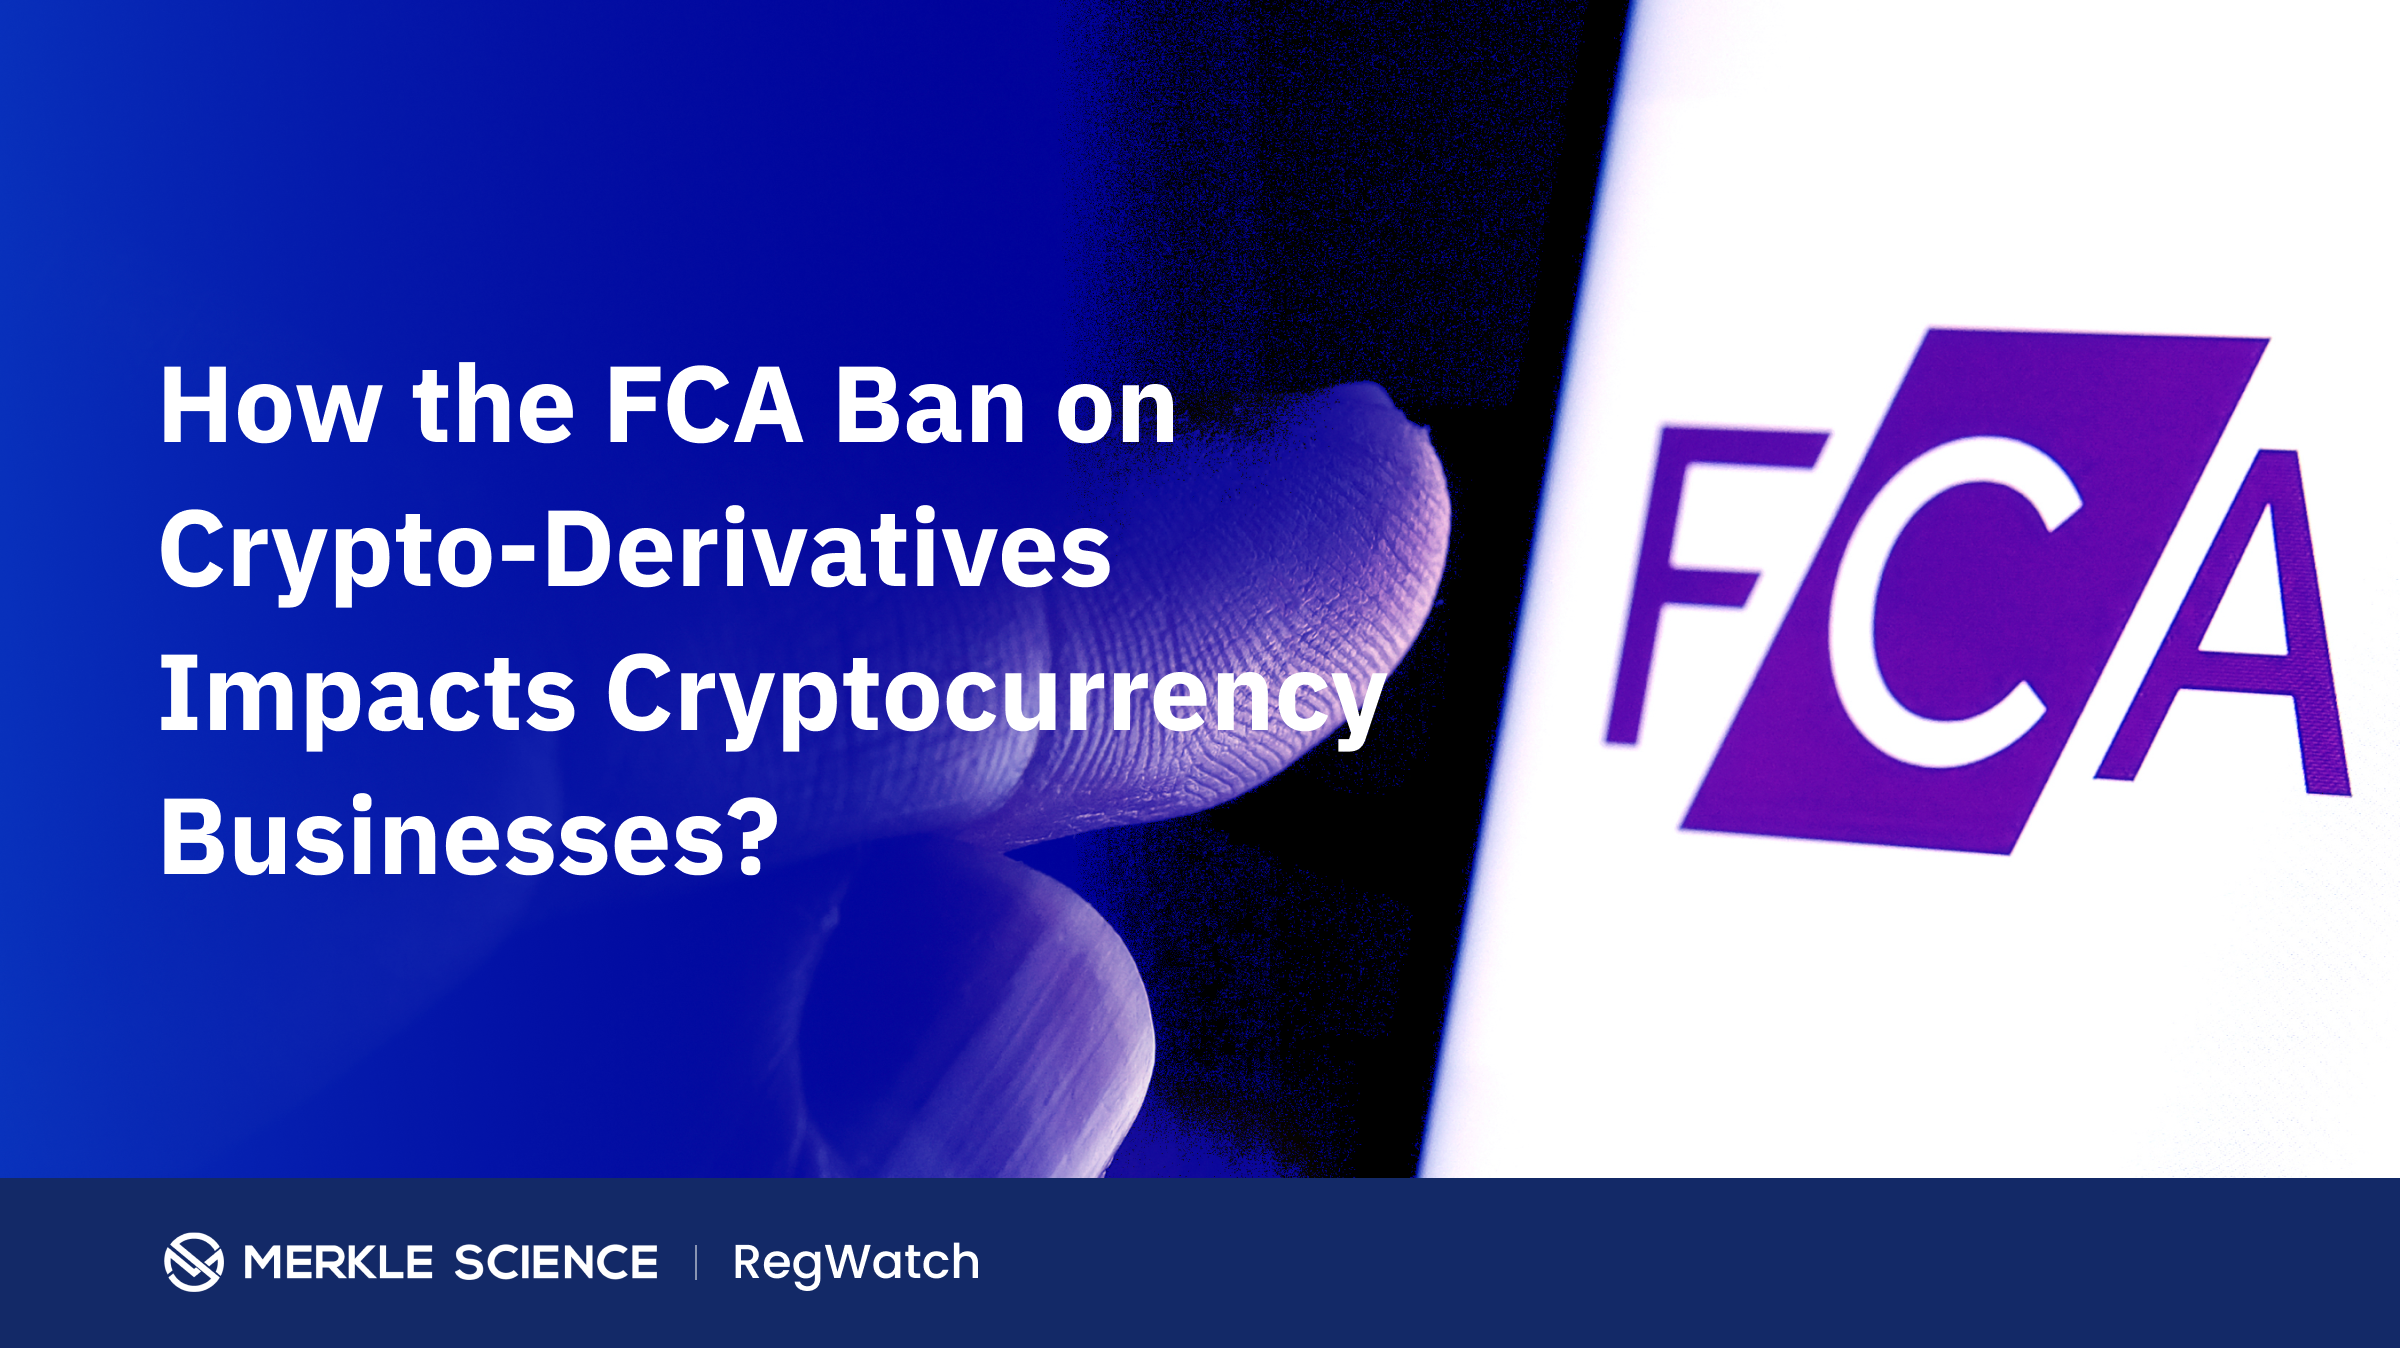 How the FCA Ban on Crypto-Derivatives Impacts Cryptocurrency Businesses?